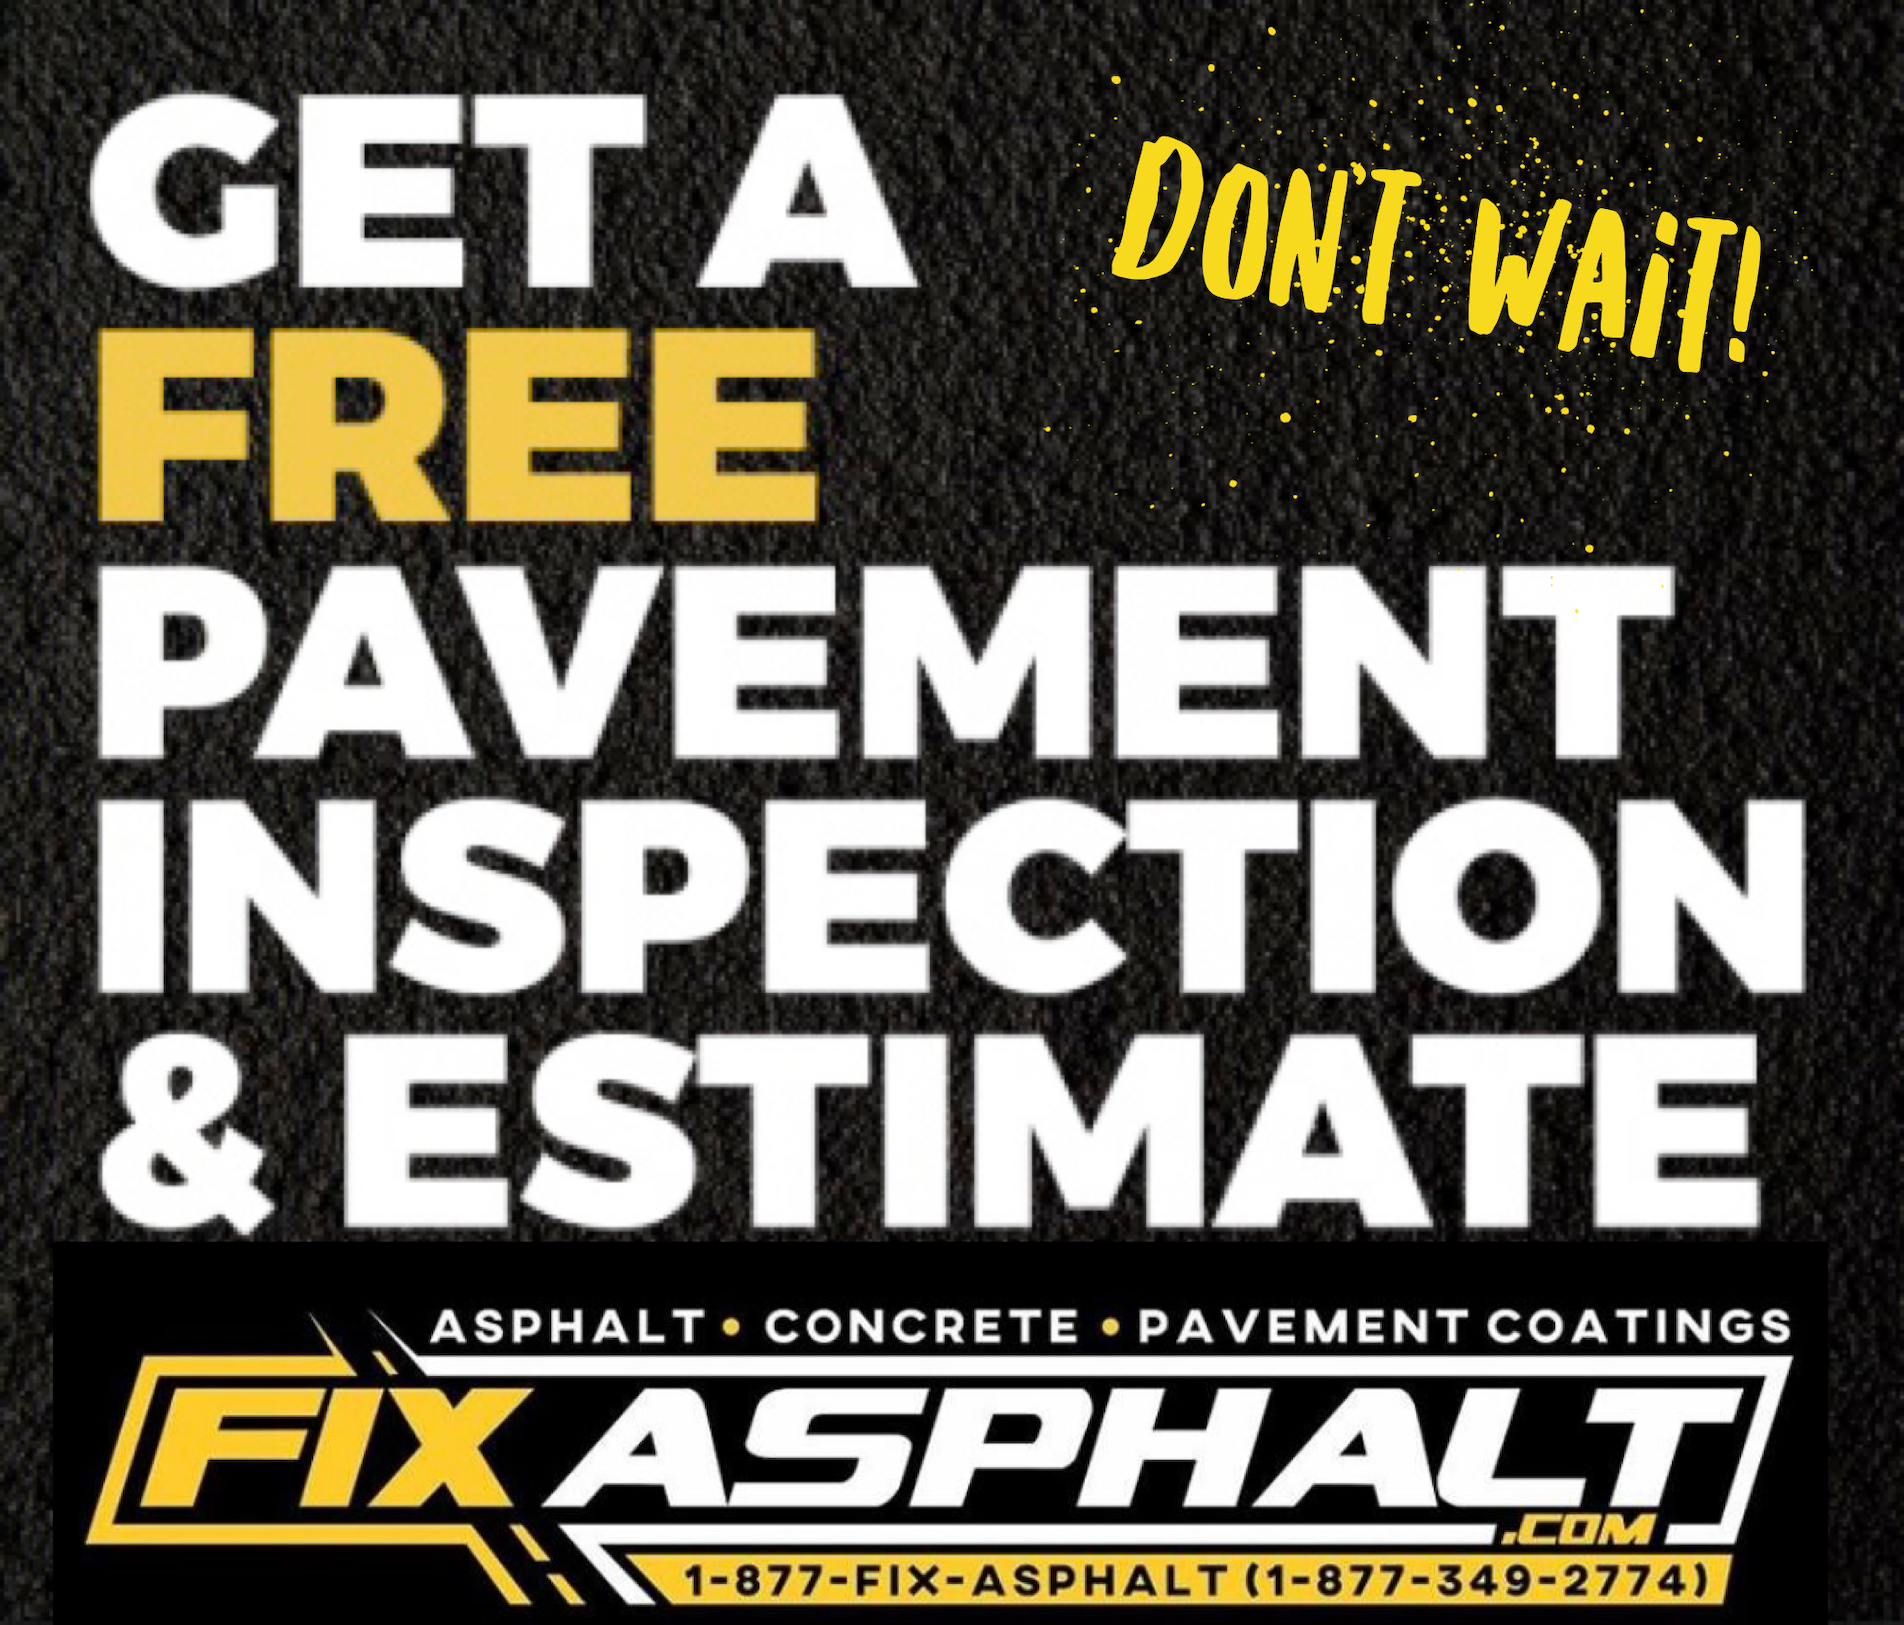 Free Inspection/Estimate